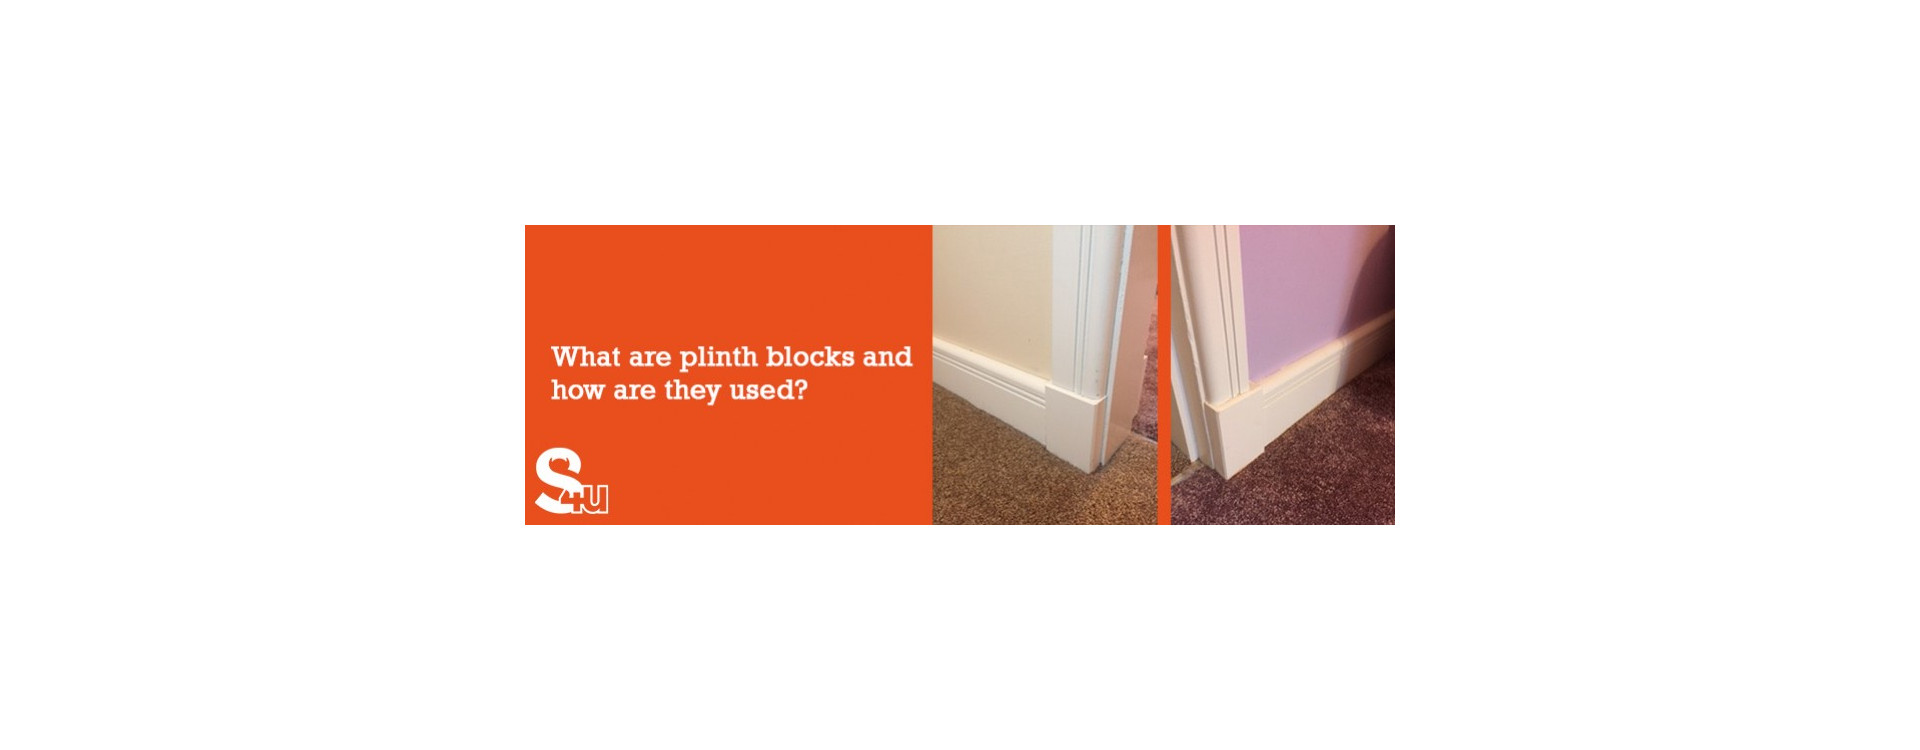 What are plinth blocks and how are they used?